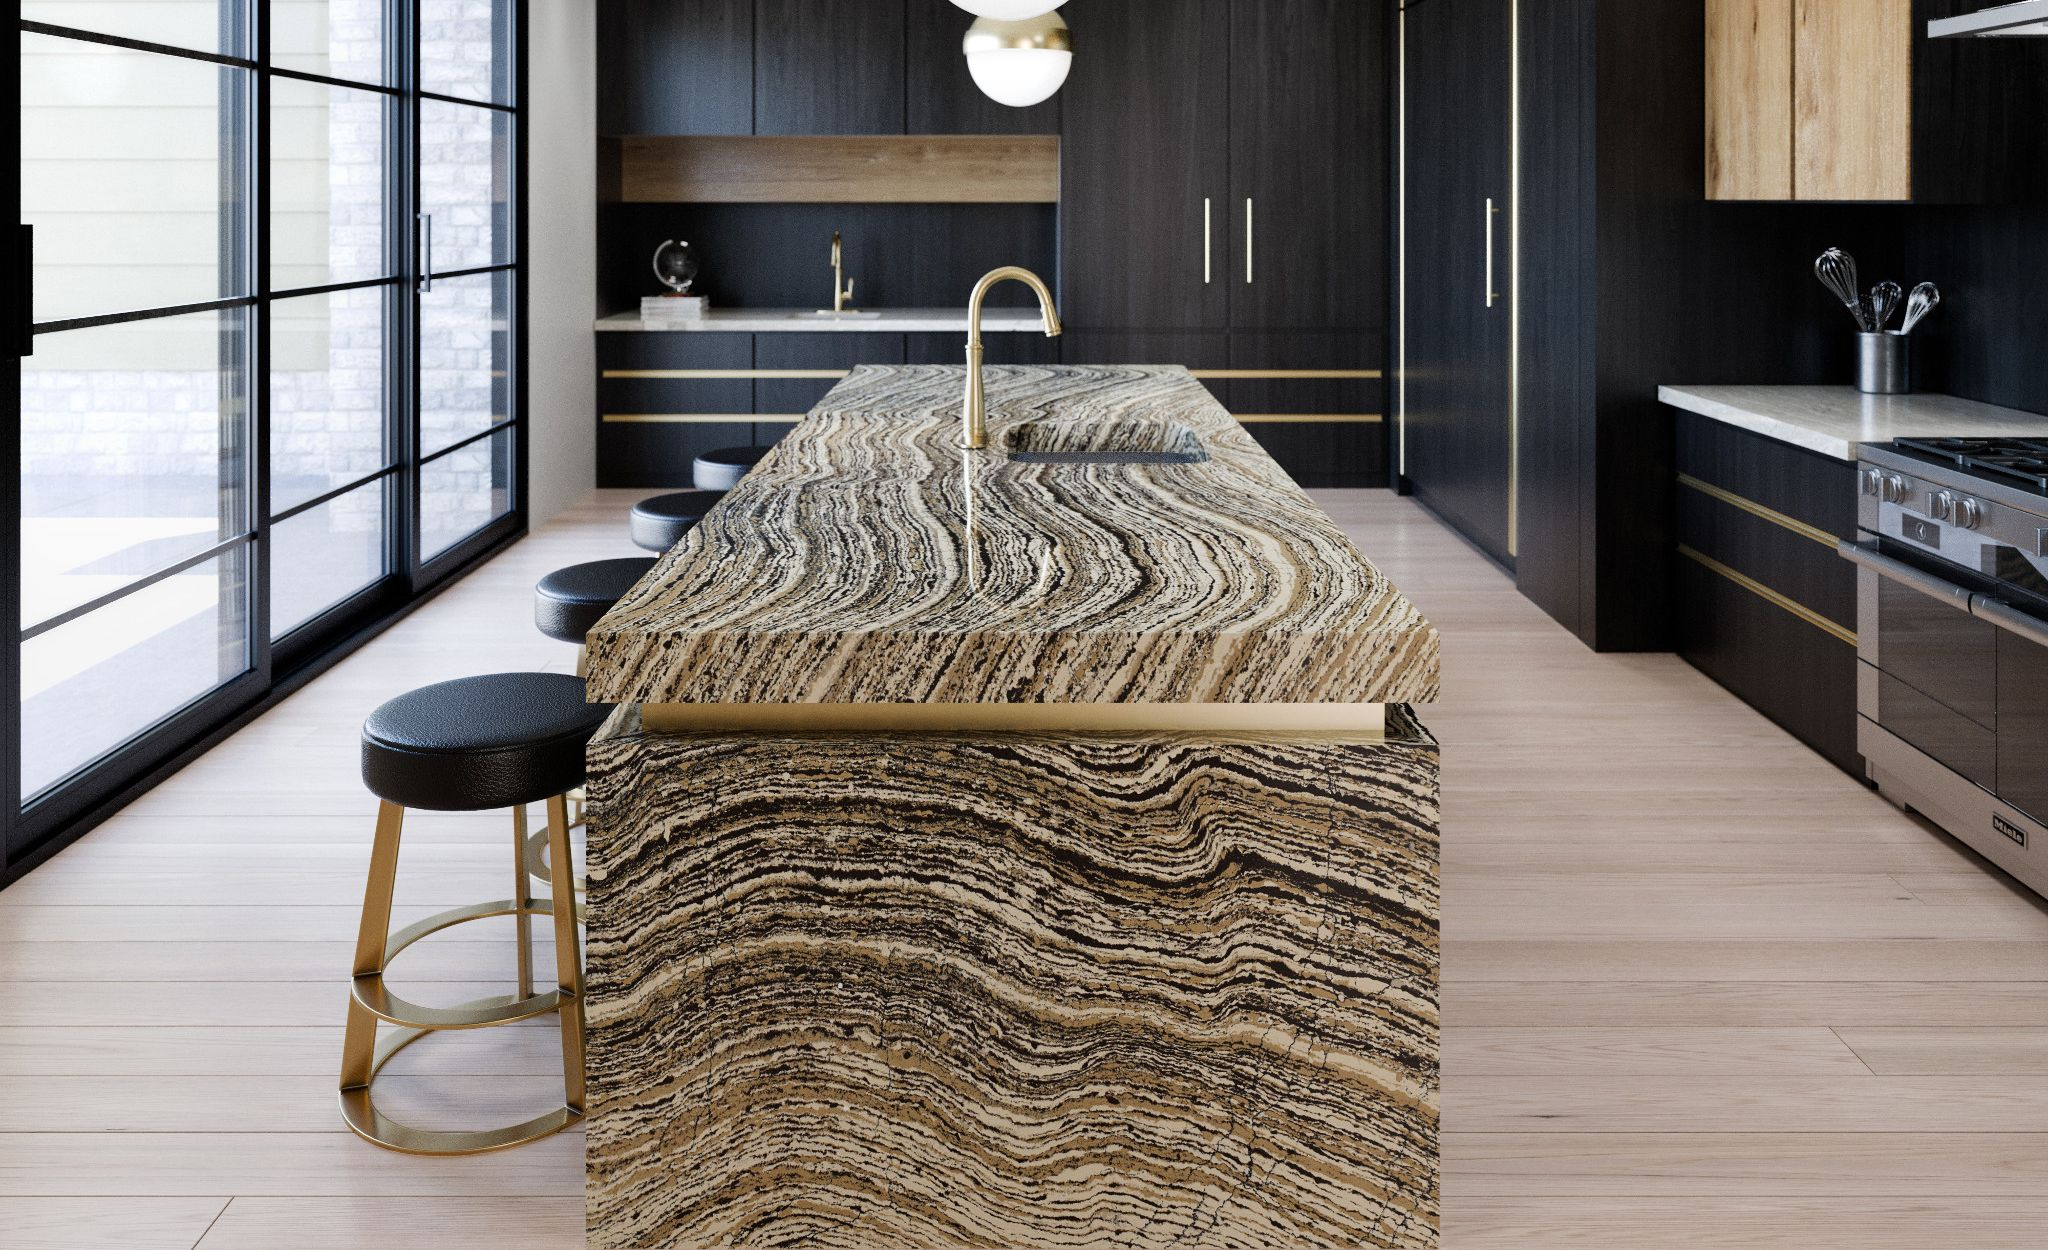 Cambria Clairidge offers a dramatic alternative to wood countertops.